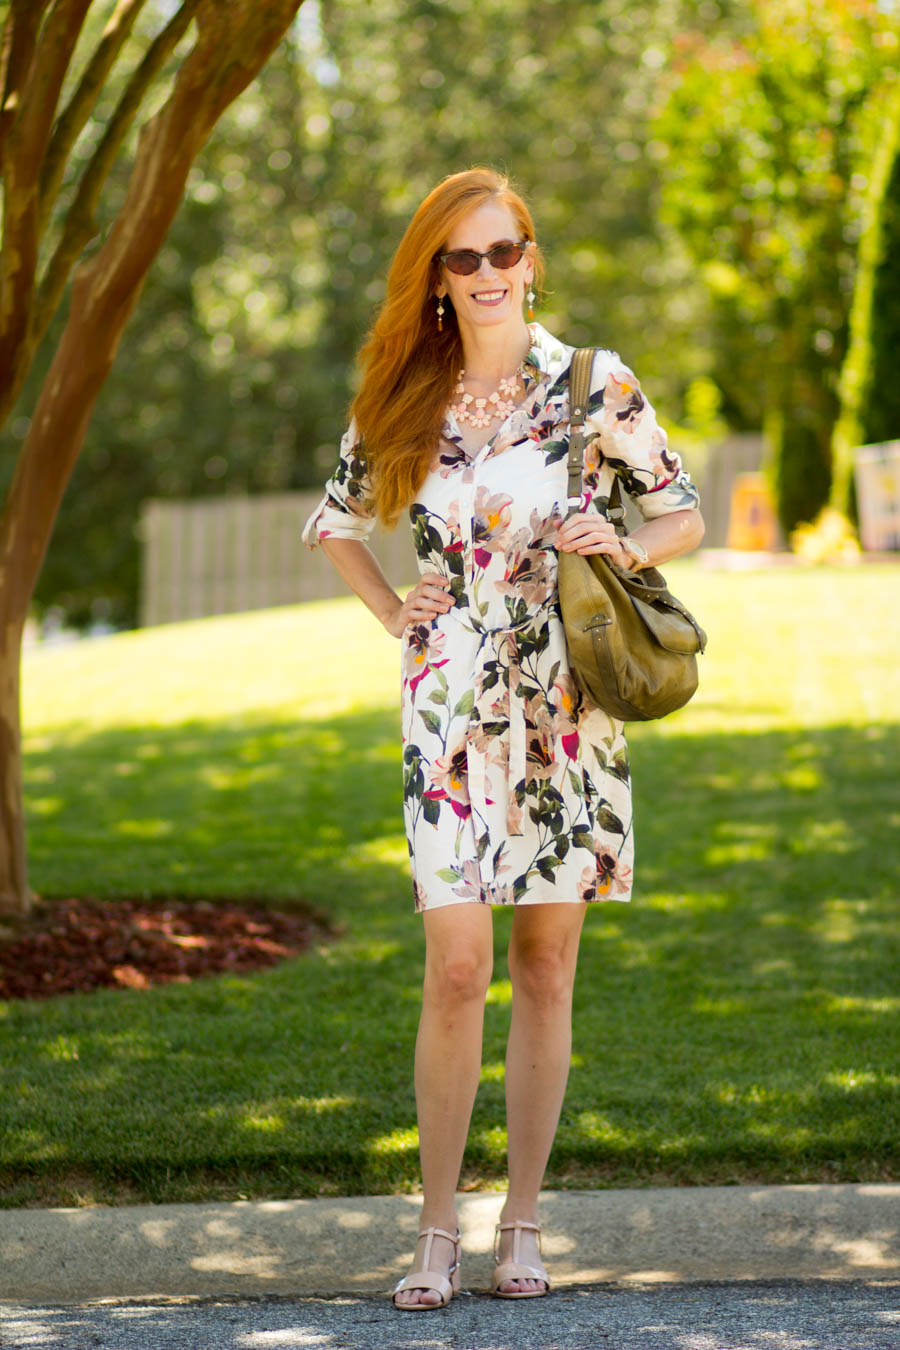 5ec02b6032 Turning Heads #Linkup Zara Floral Safari Shirtdress-Tips on Wearing the  Shirtdress - Elegantly Dressed and Stylish -Fashion Over 50